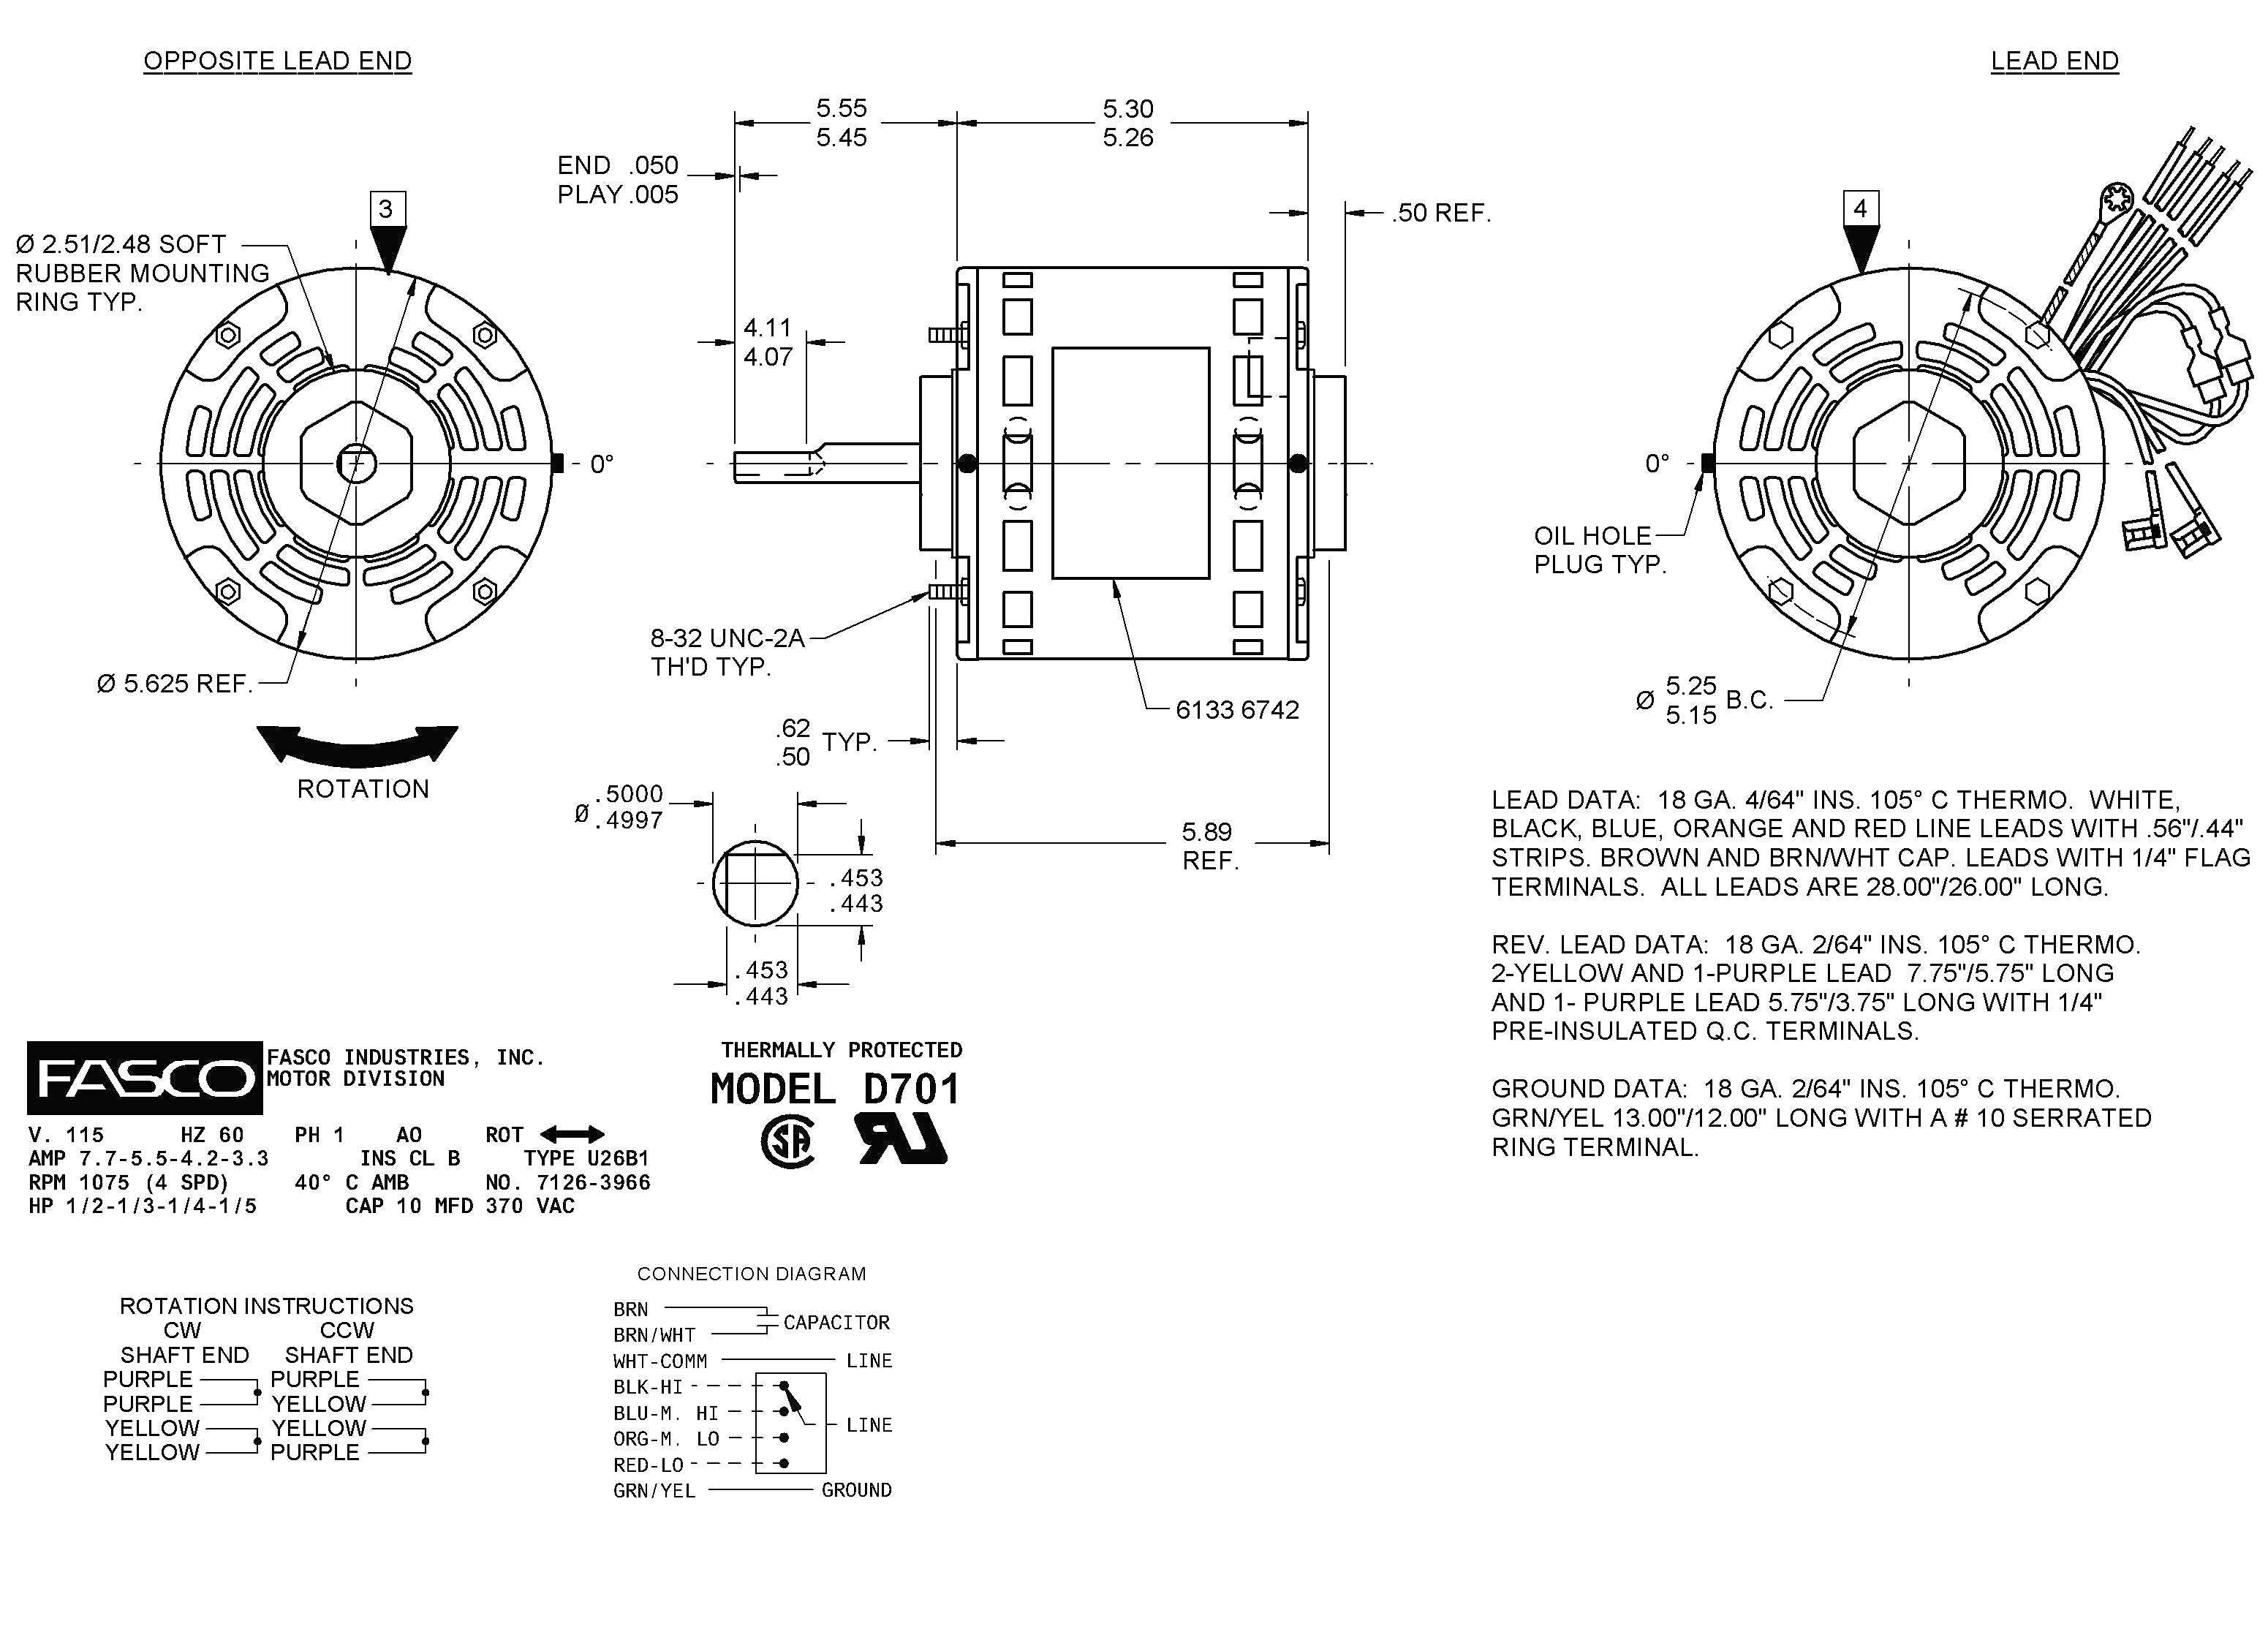 Fasco Blower Motor Wiring Diagram | Free Wiring Diagram on hvac electrical diagrams, voltage regulator wiring diagram, egr valve wiring diagram, hvac components diagram, spark plug wiring diagram, water pump wiring diagram, blower motor relay diagram, cooling fan wiring diagram, 4 wire thermostat wiring diagram, headlight switch wiring diagram, 3 wire thermostat wiring diagram, fuel injector wiring diagram, a/c compressor wiring diagram, hvac circuit diagram, honeywell switching relay wiring diagram, vehicle speed sensor wiring diagram, fuse wiring diagram, battery wiring diagram, hvac furnace blower replacement, potential relay wiring diagram,